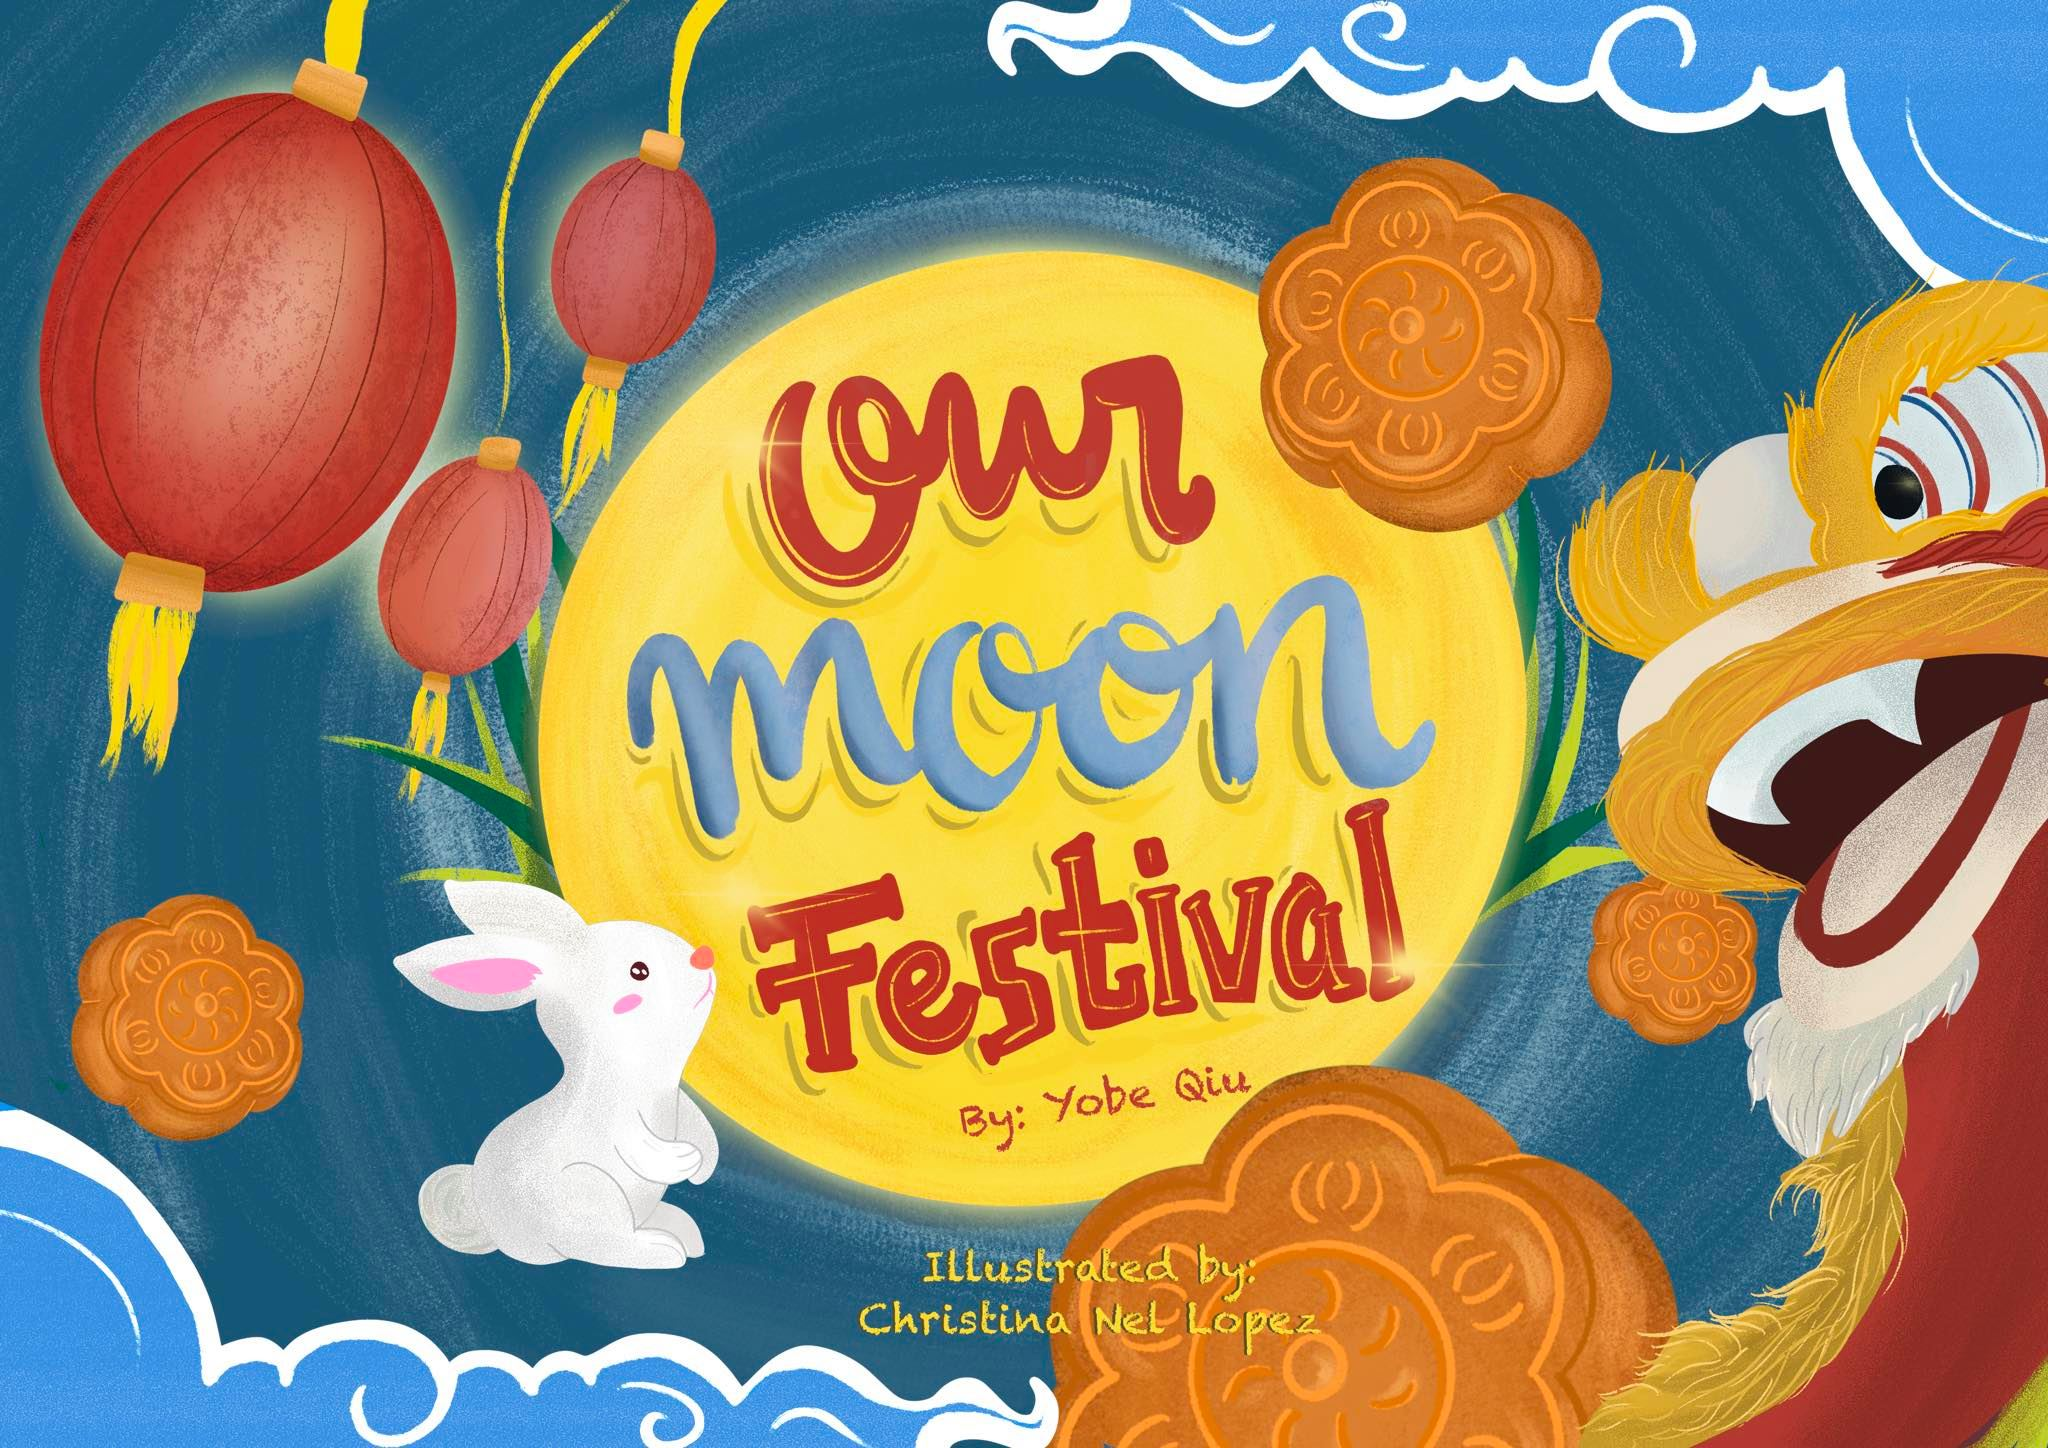 Our Moon Festival by Yobe Qiu Children's Book Review